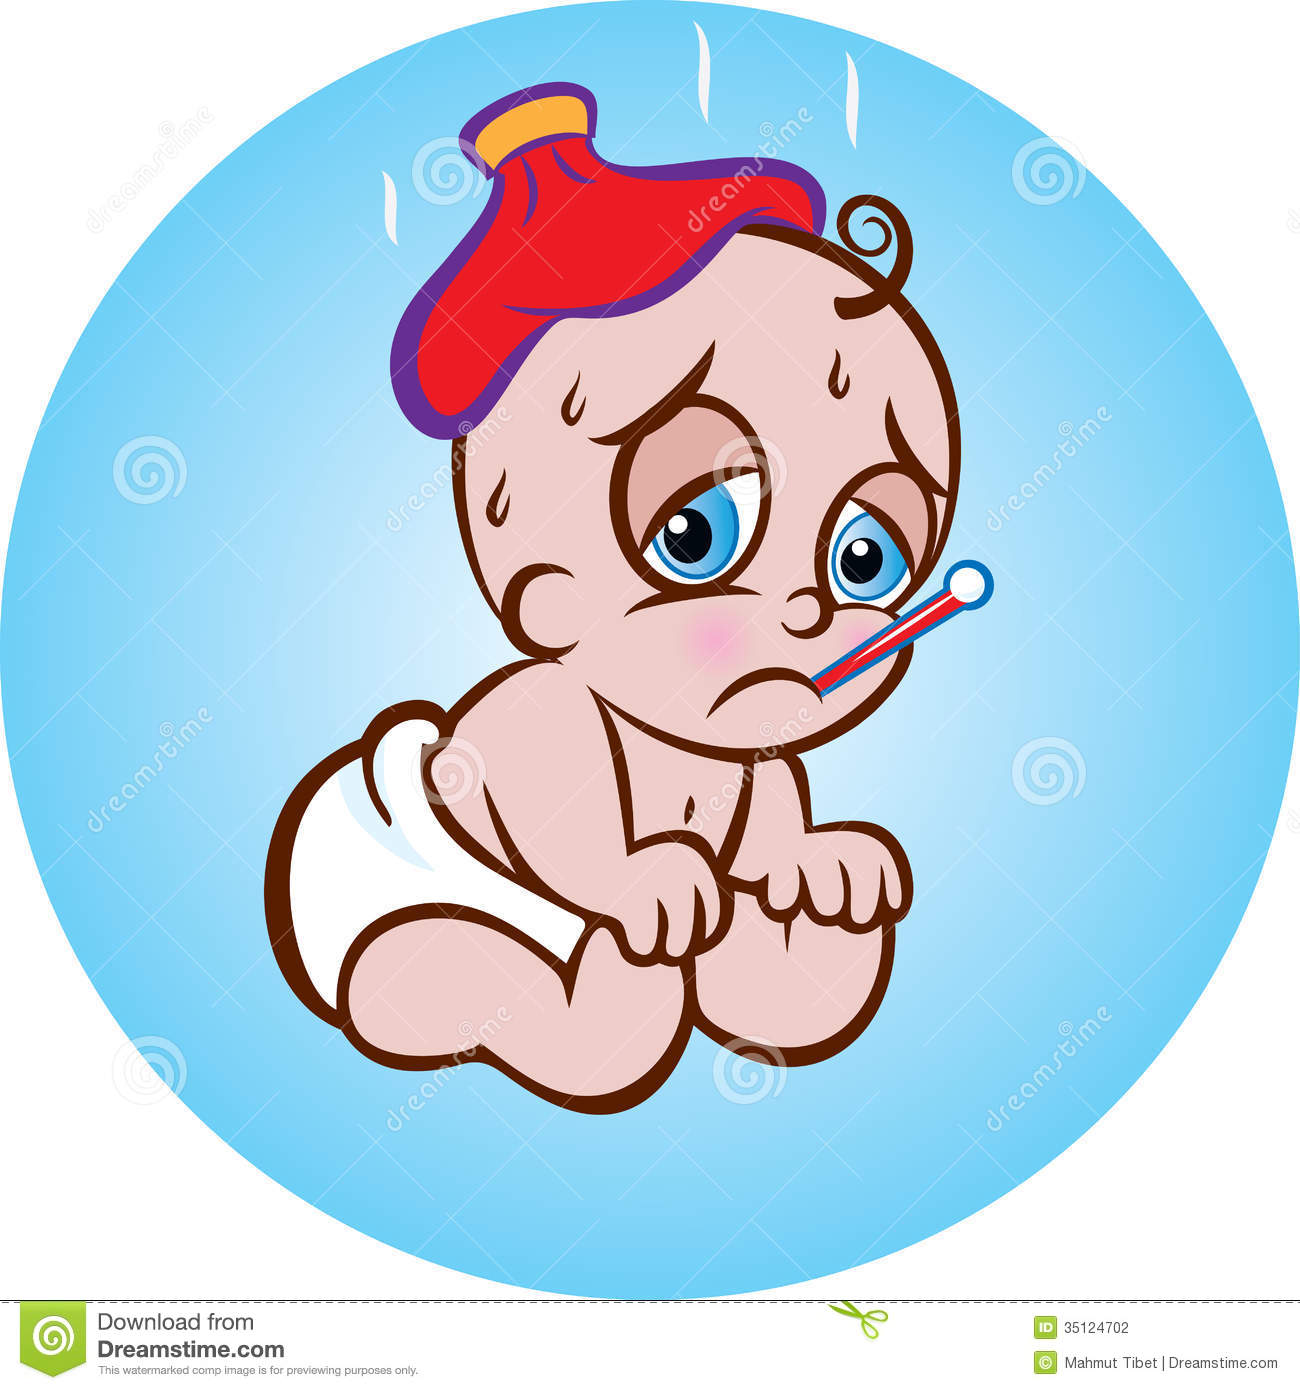 Sick Baby Clipart - Clipart Kid